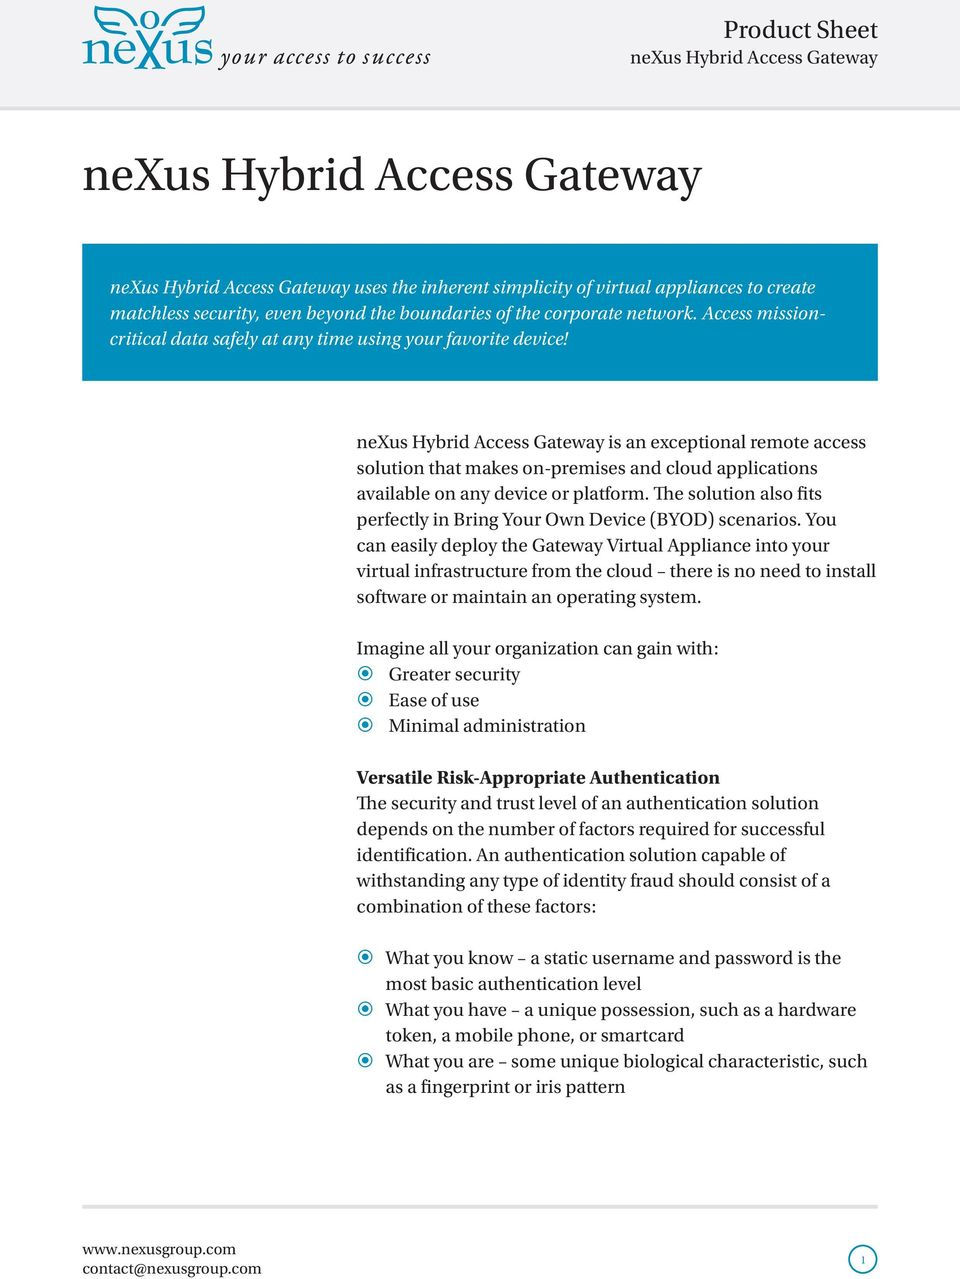 nexus Hybrid Access Gateway is an exceptional remote access solution that makes on-premises and cloud applications available on any device or platform.